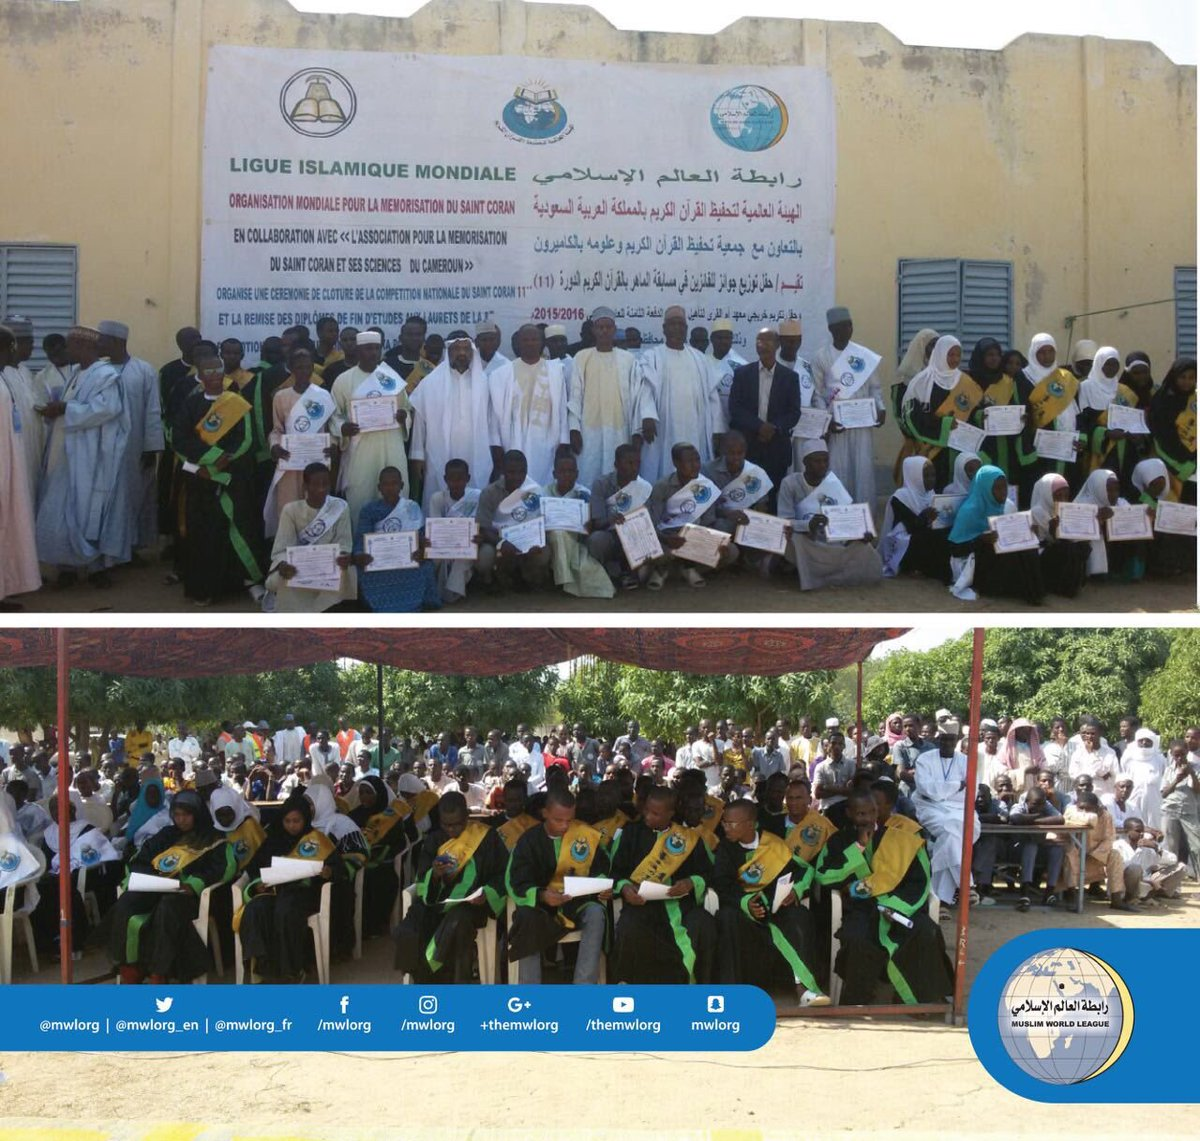 The MWL sponsors a Skilled Holy Qur'an competition in the Republic of Cameroon, and honors 40 Quran hafiz and more than 140 participants